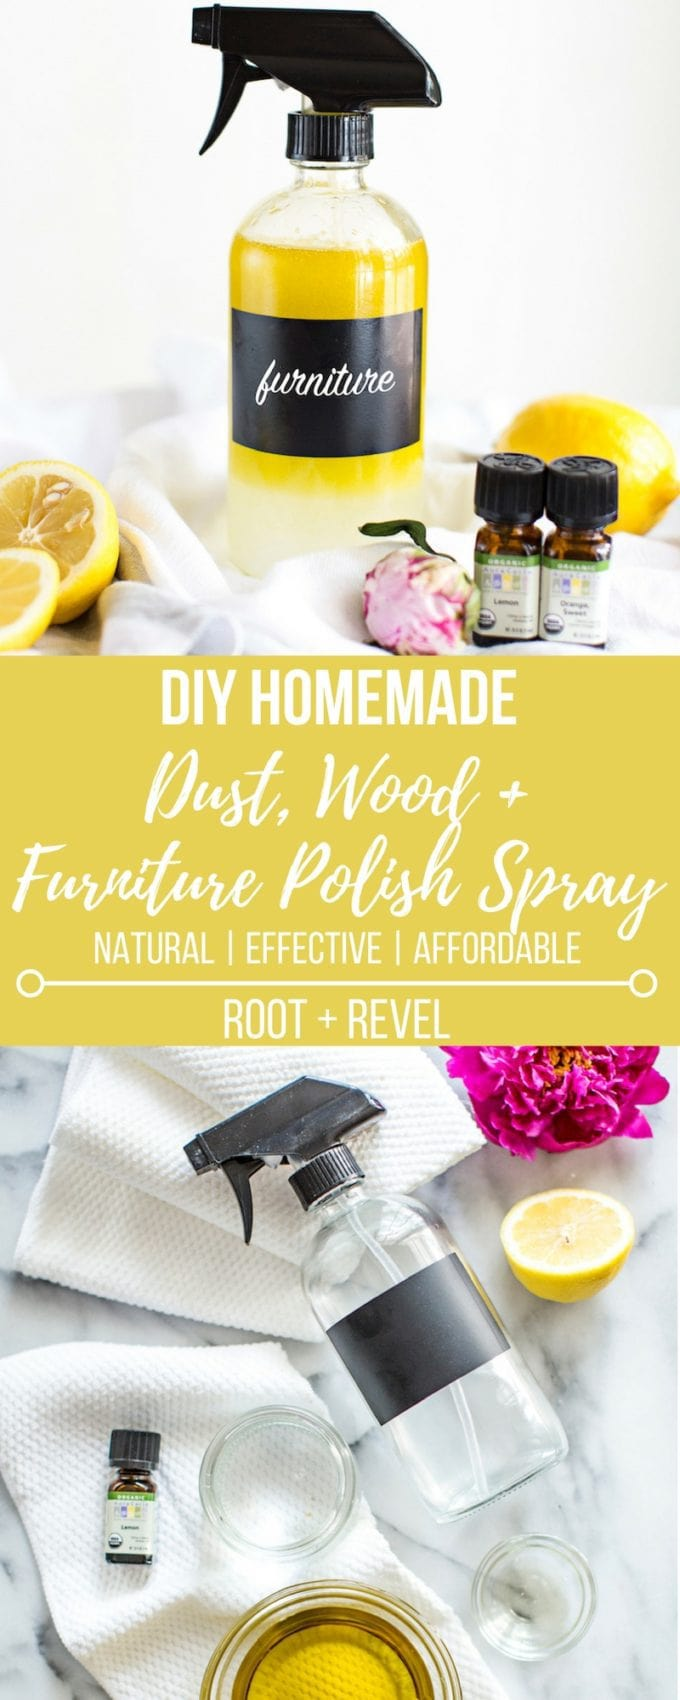 This DIY homemade dust  wood   furniture polish spray is a safe  affordable  and. DIY Homemade Dust  Wood   Furniture Polish Spray   Root   Revel